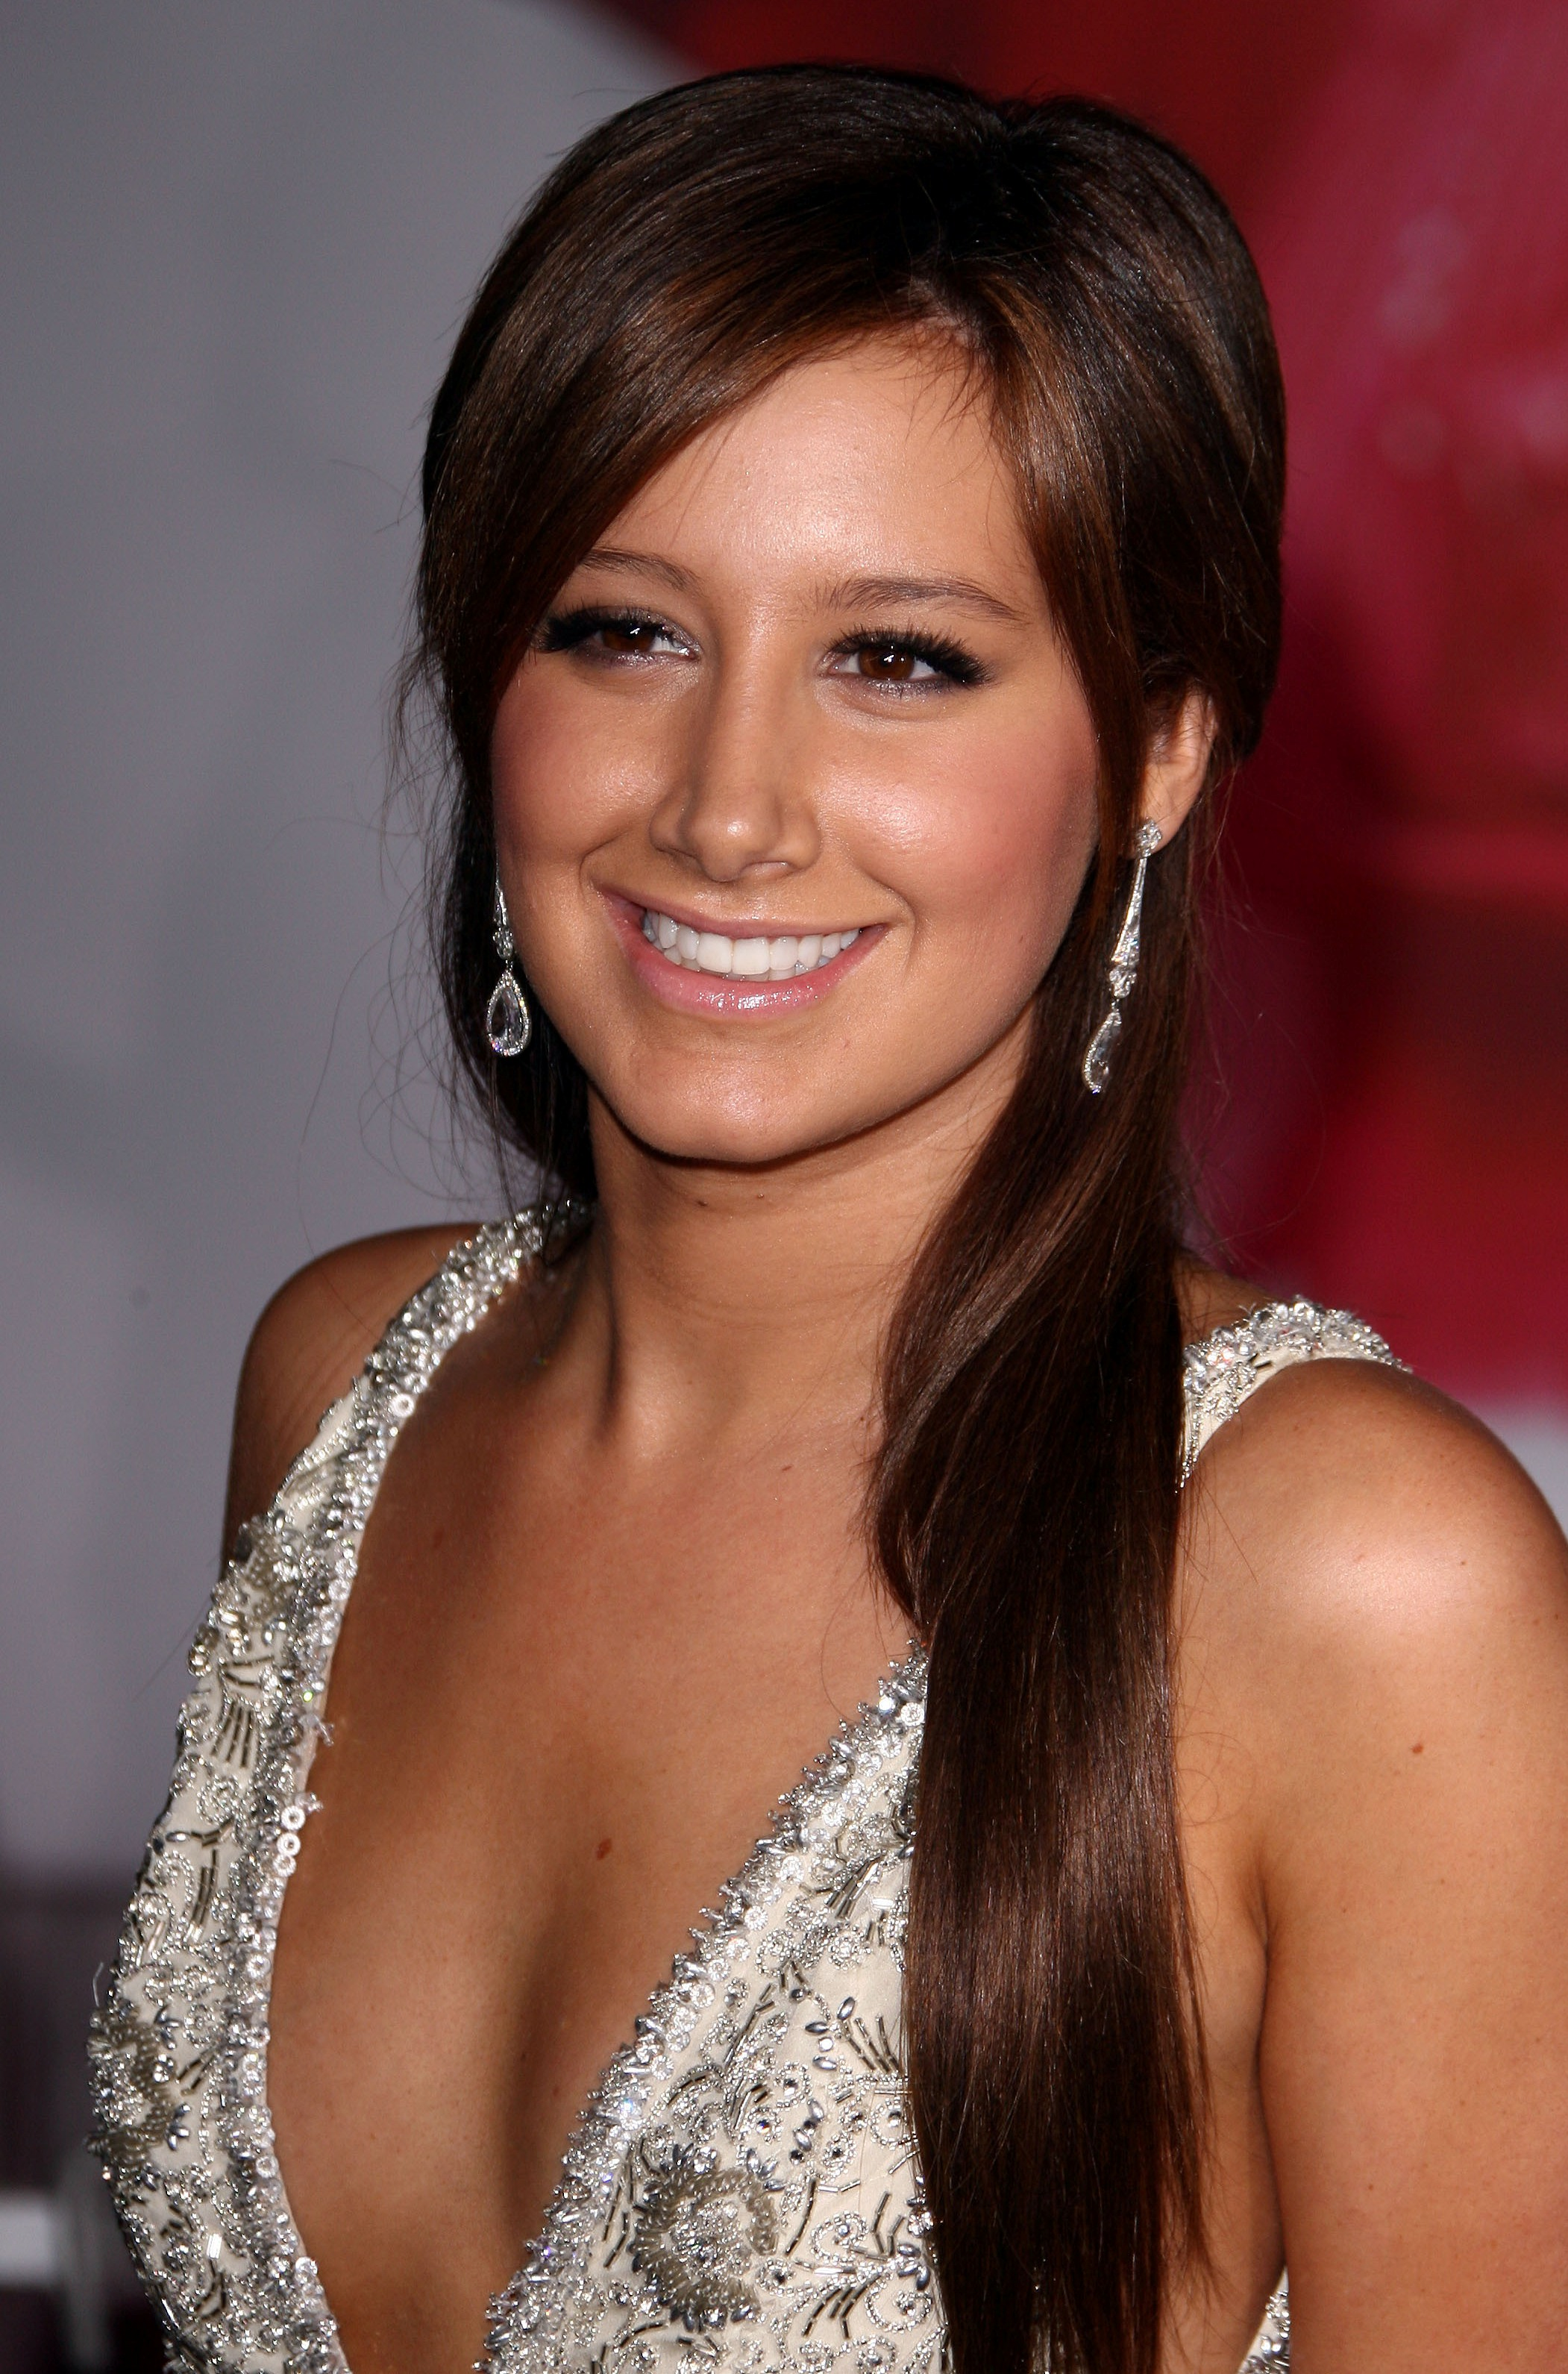 ashley tisdale brown hair pictures. Ashley Tisdale busted out new